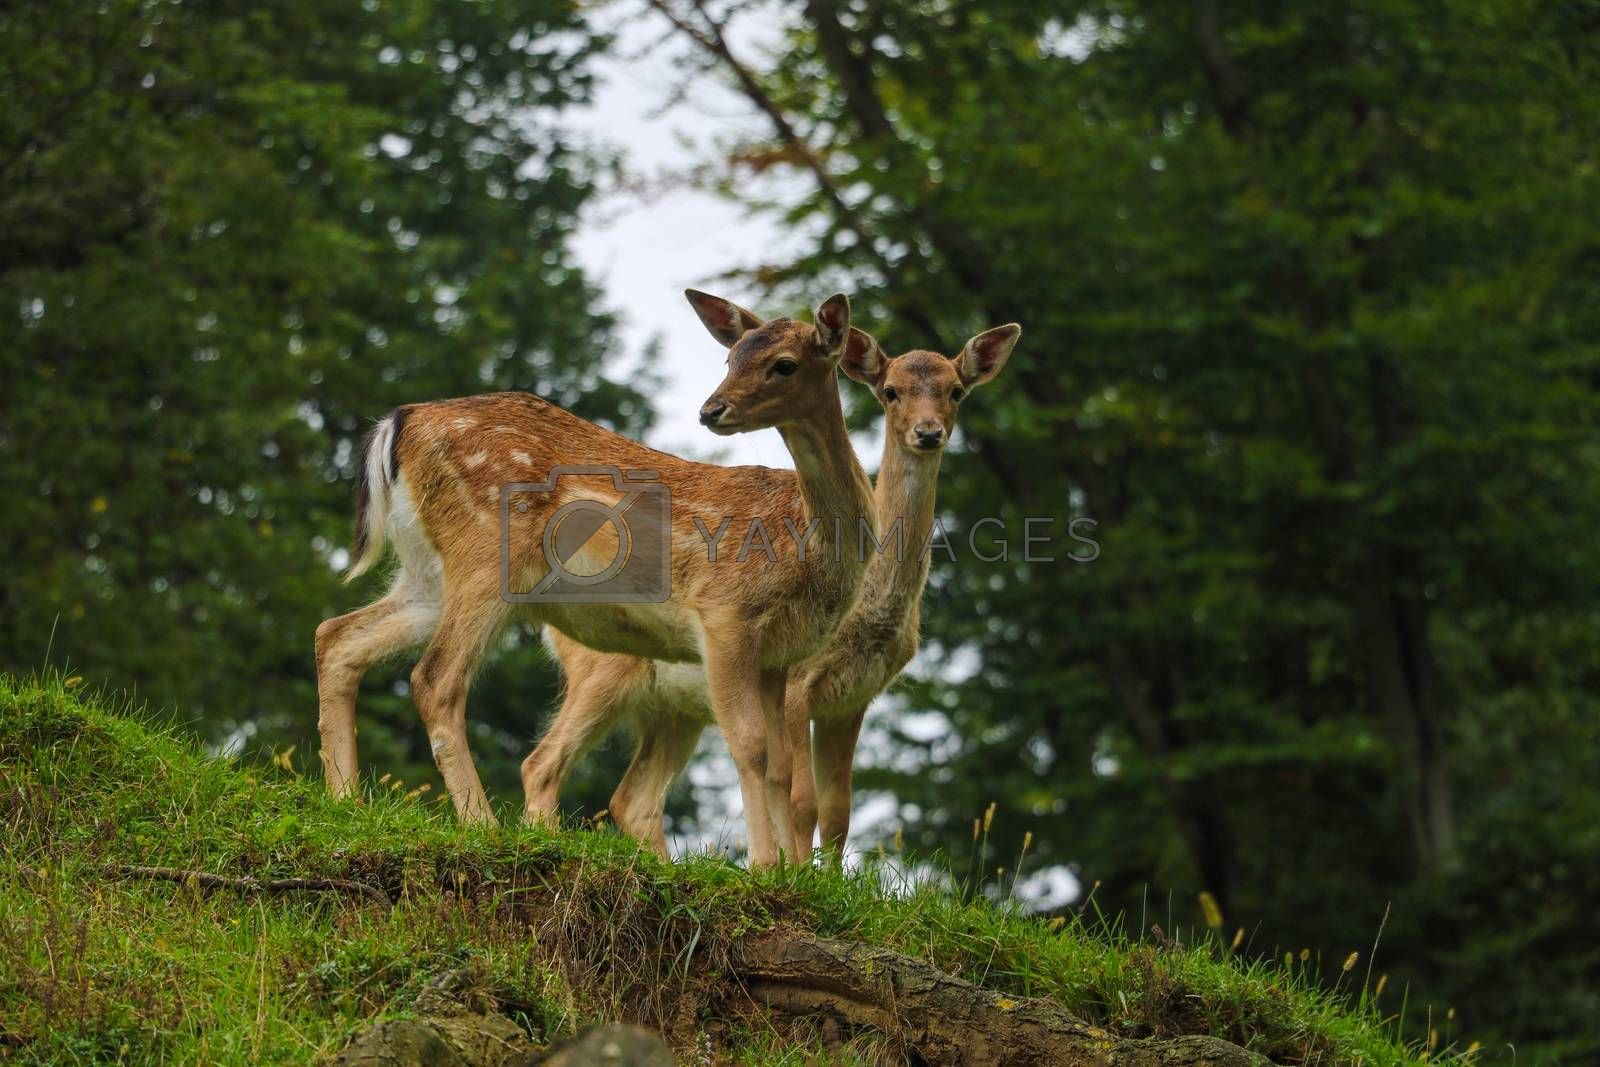 Two young sika deer came out of the forest